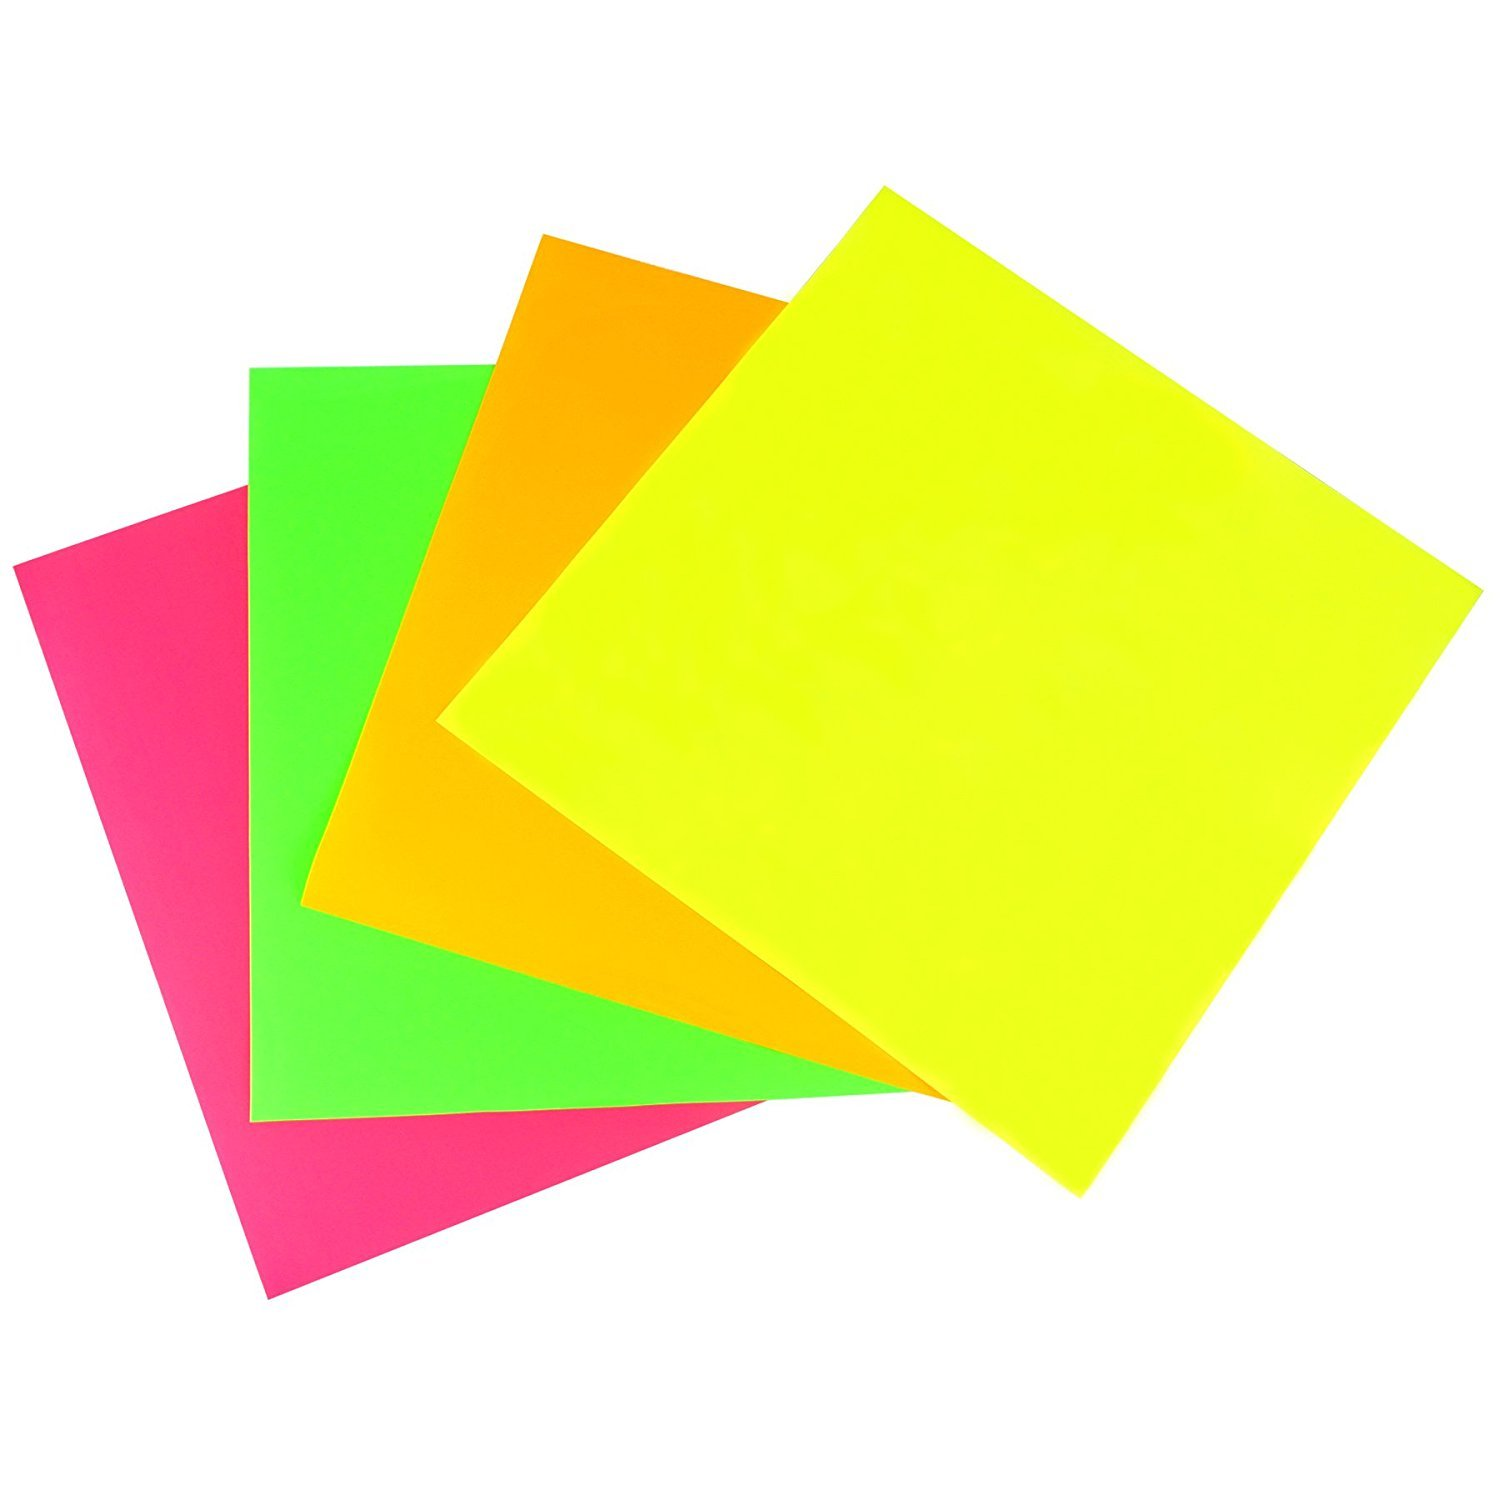 30.5cm x 30.5cm Heat Transfer Vinyl Sheets Iron On HTV Heat Press - For Fabric, Clothing T-shirts Decoration Permanent Craft Project DIY - 4 Pack of Assorted Fluorescent Colours SWINTENG